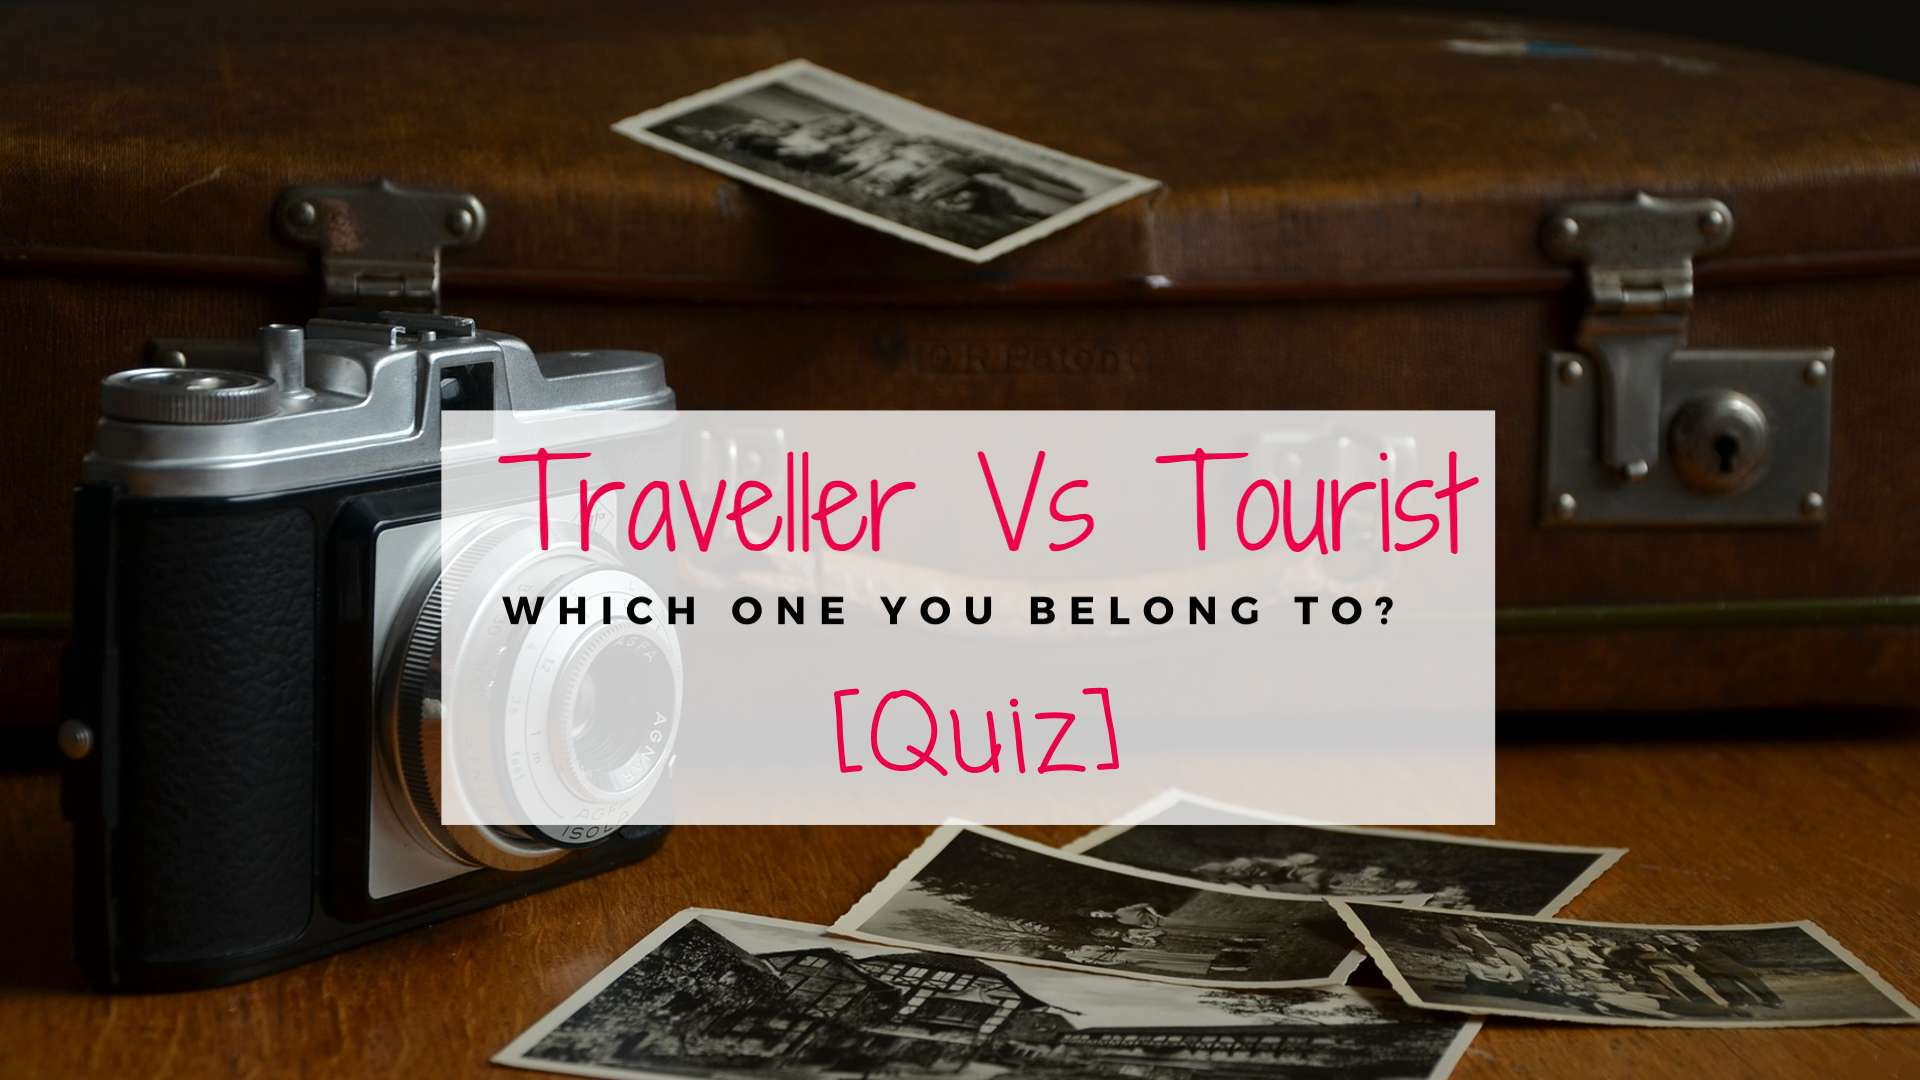 [Quiz] Traveller vs Tourist